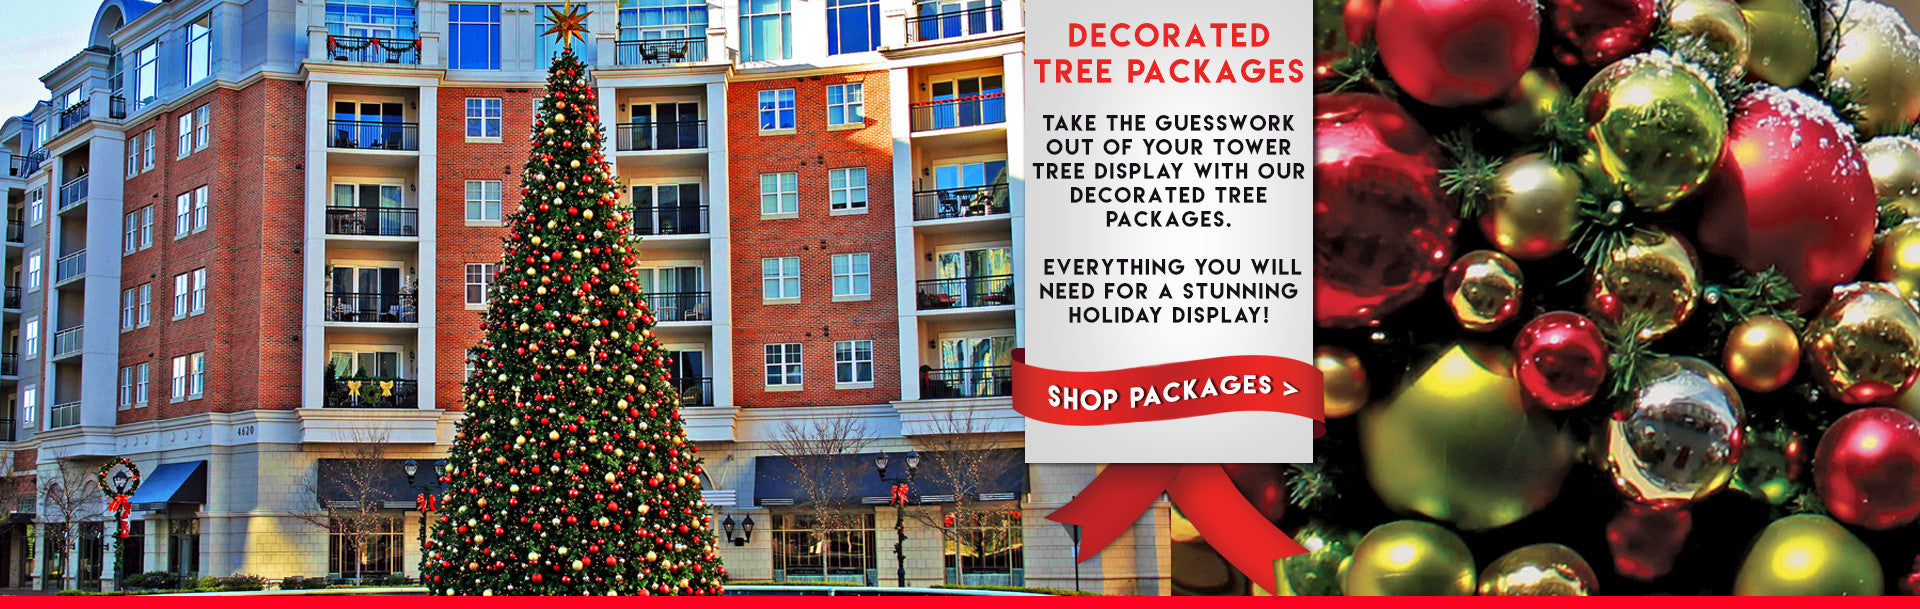 Pre Decorated Christmas Tree Packages